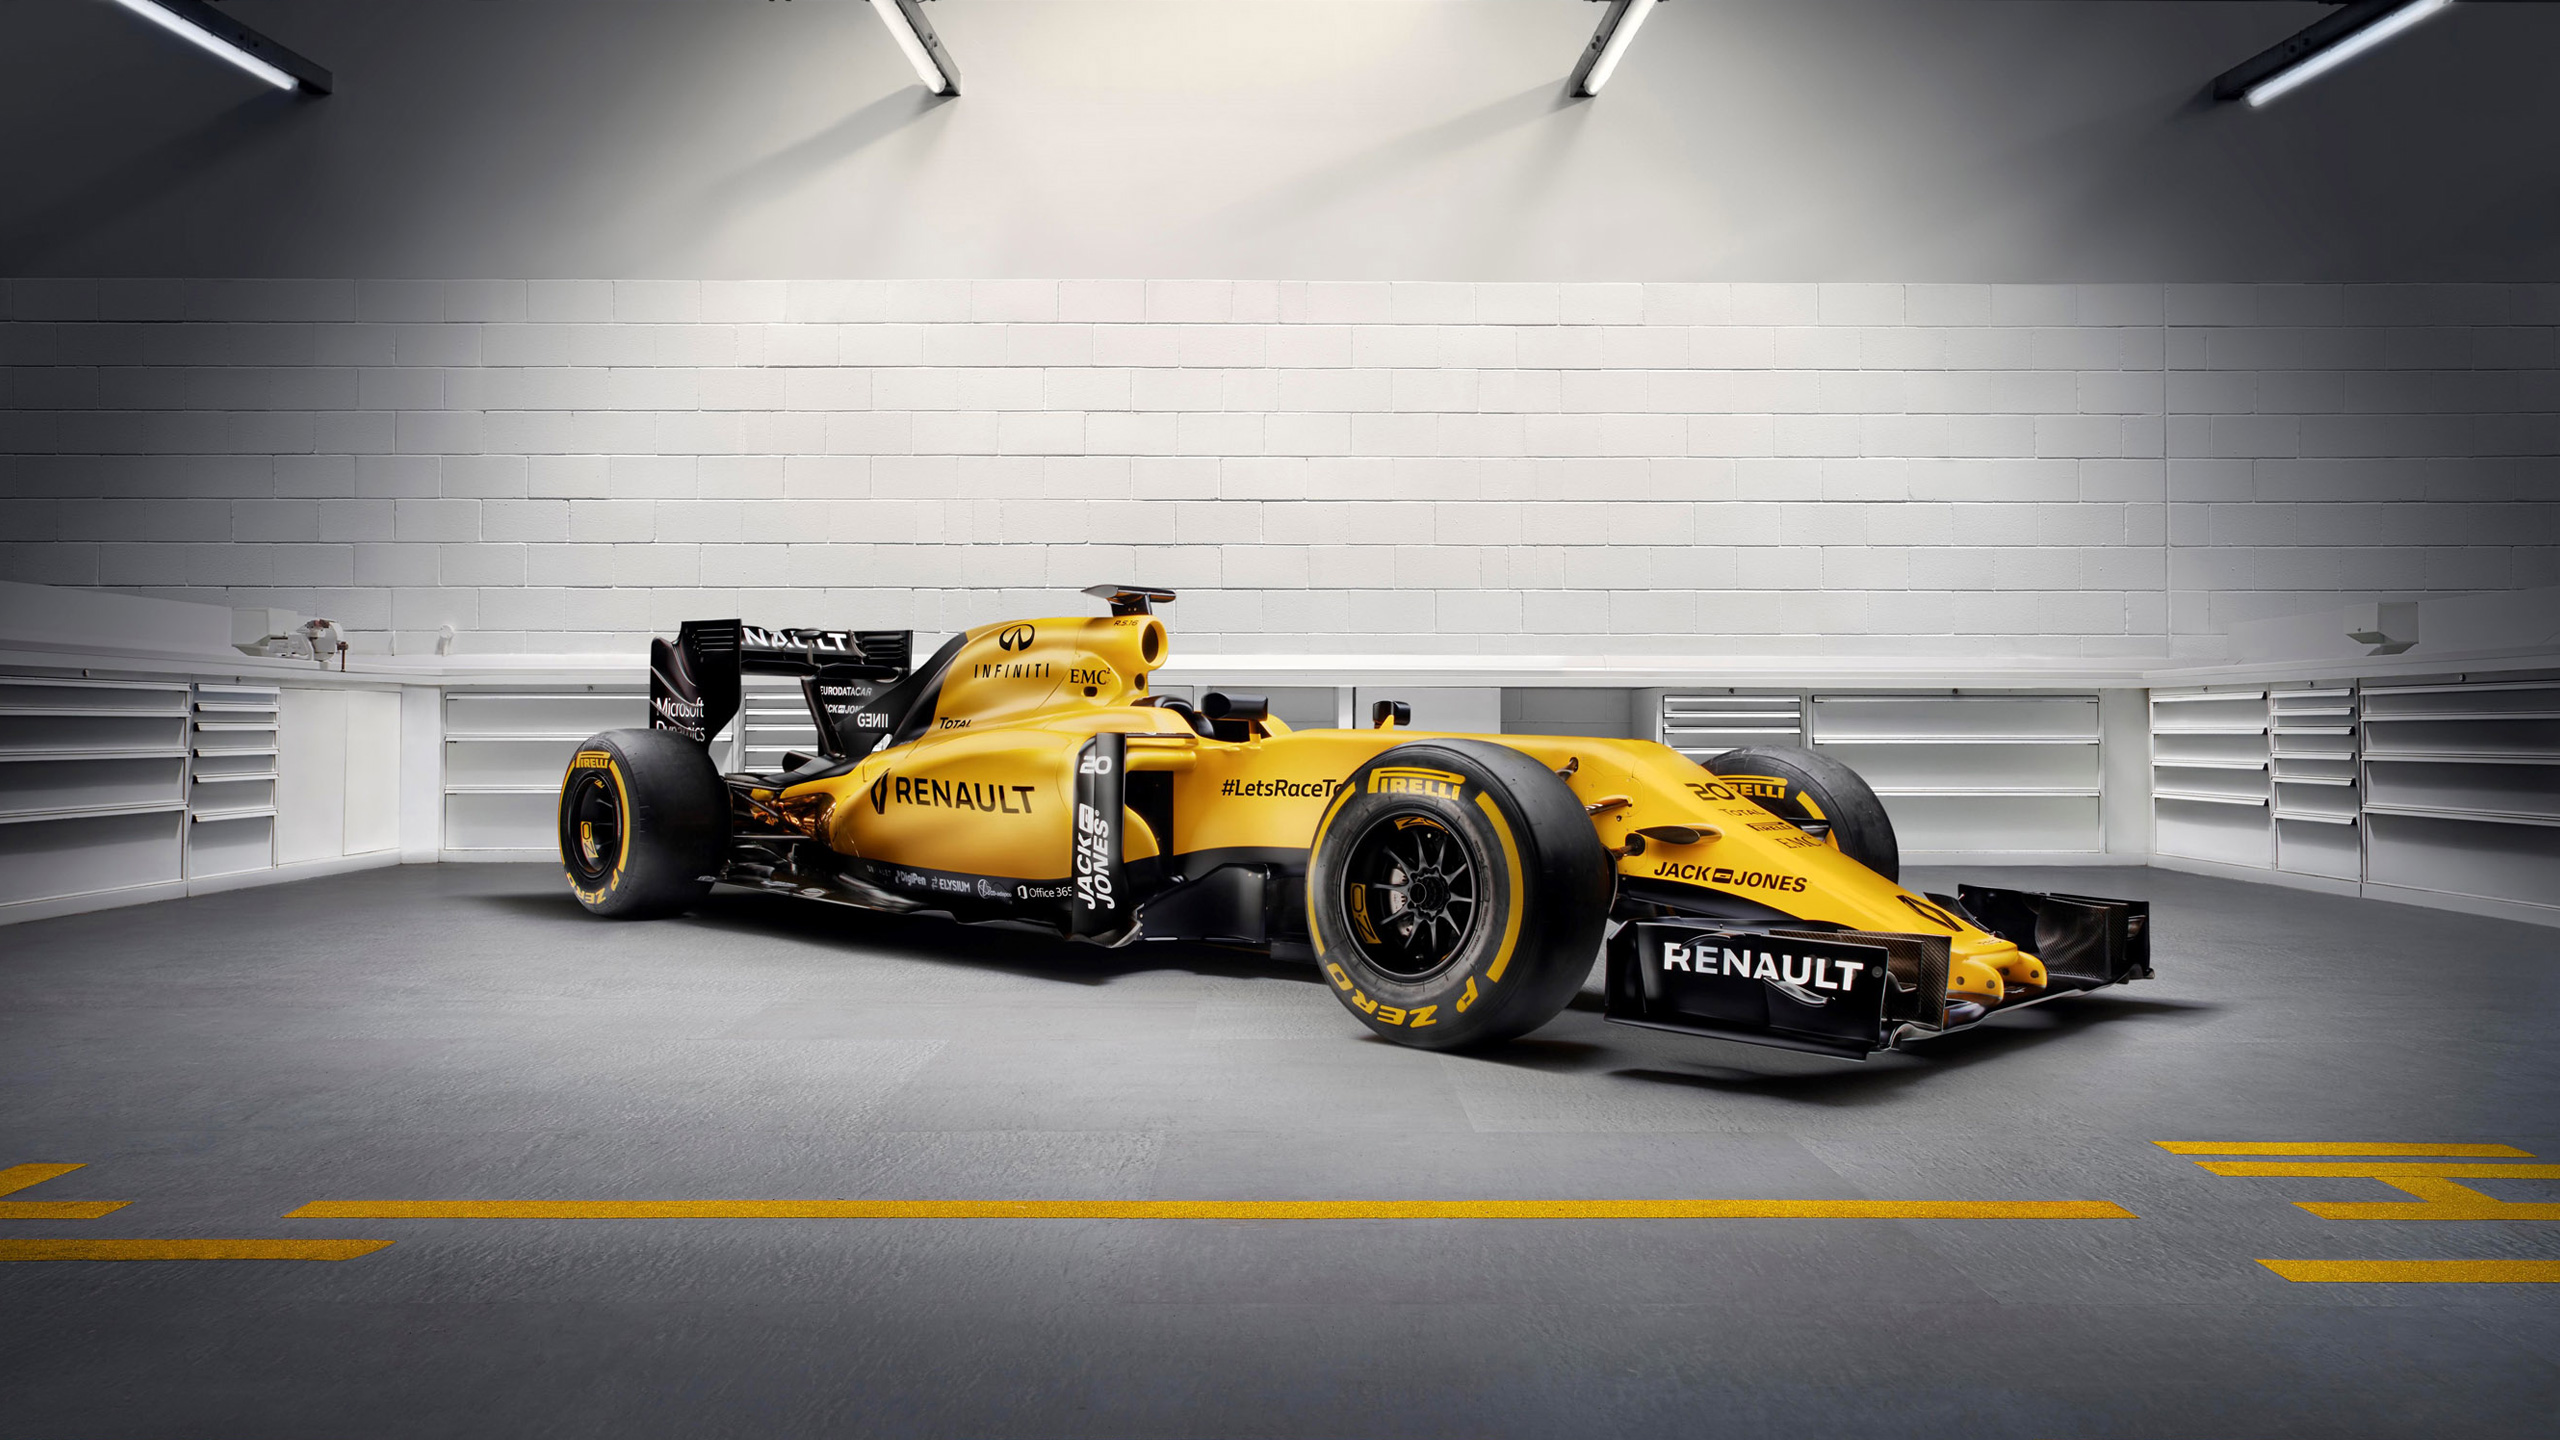 2016 renault rs16 formula 1 wallpaper hd car wallpapers. Black Bedroom Furniture Sets. Home Design Ideas